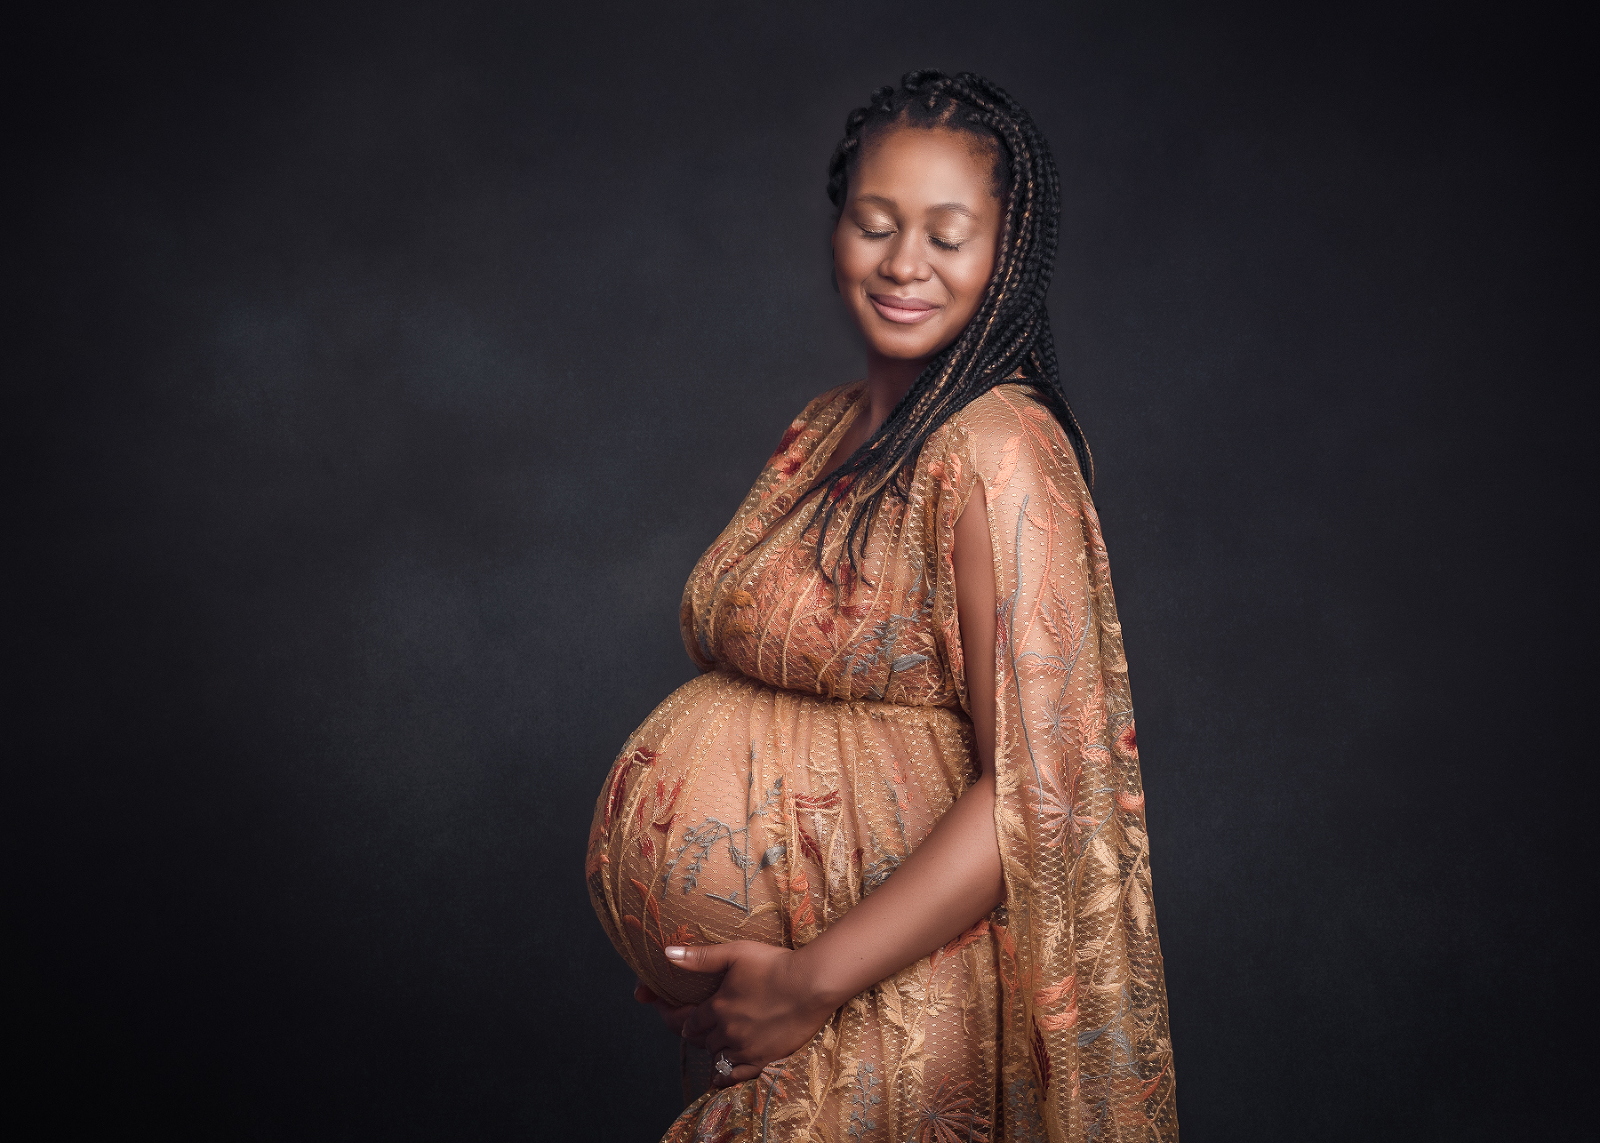 Glowing pregnant lady in golden maternity gown